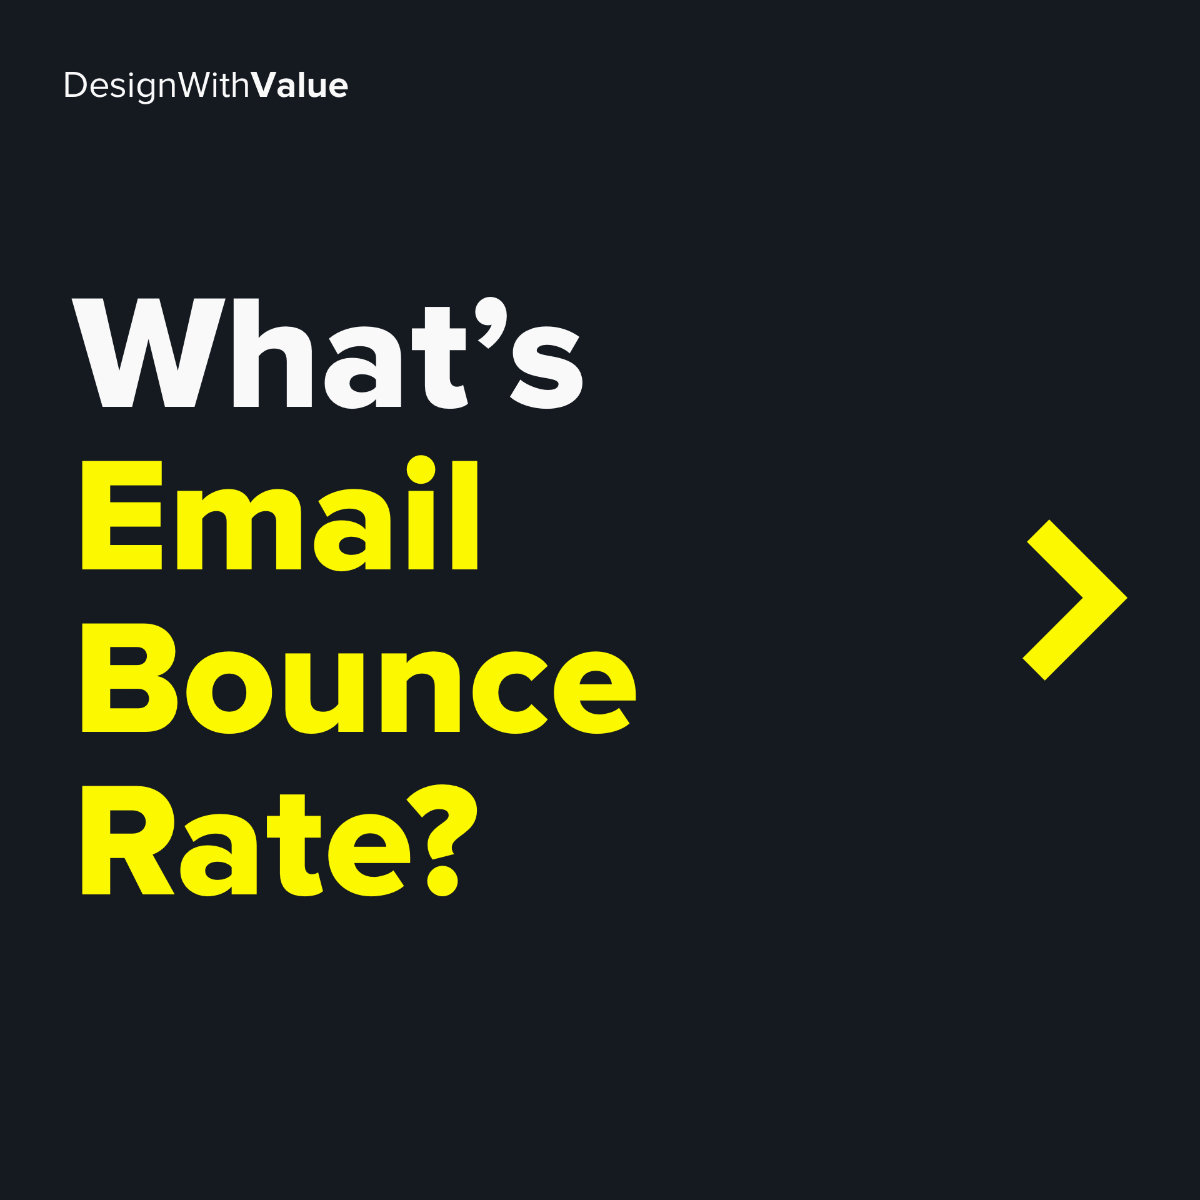 What's email bounce rate?